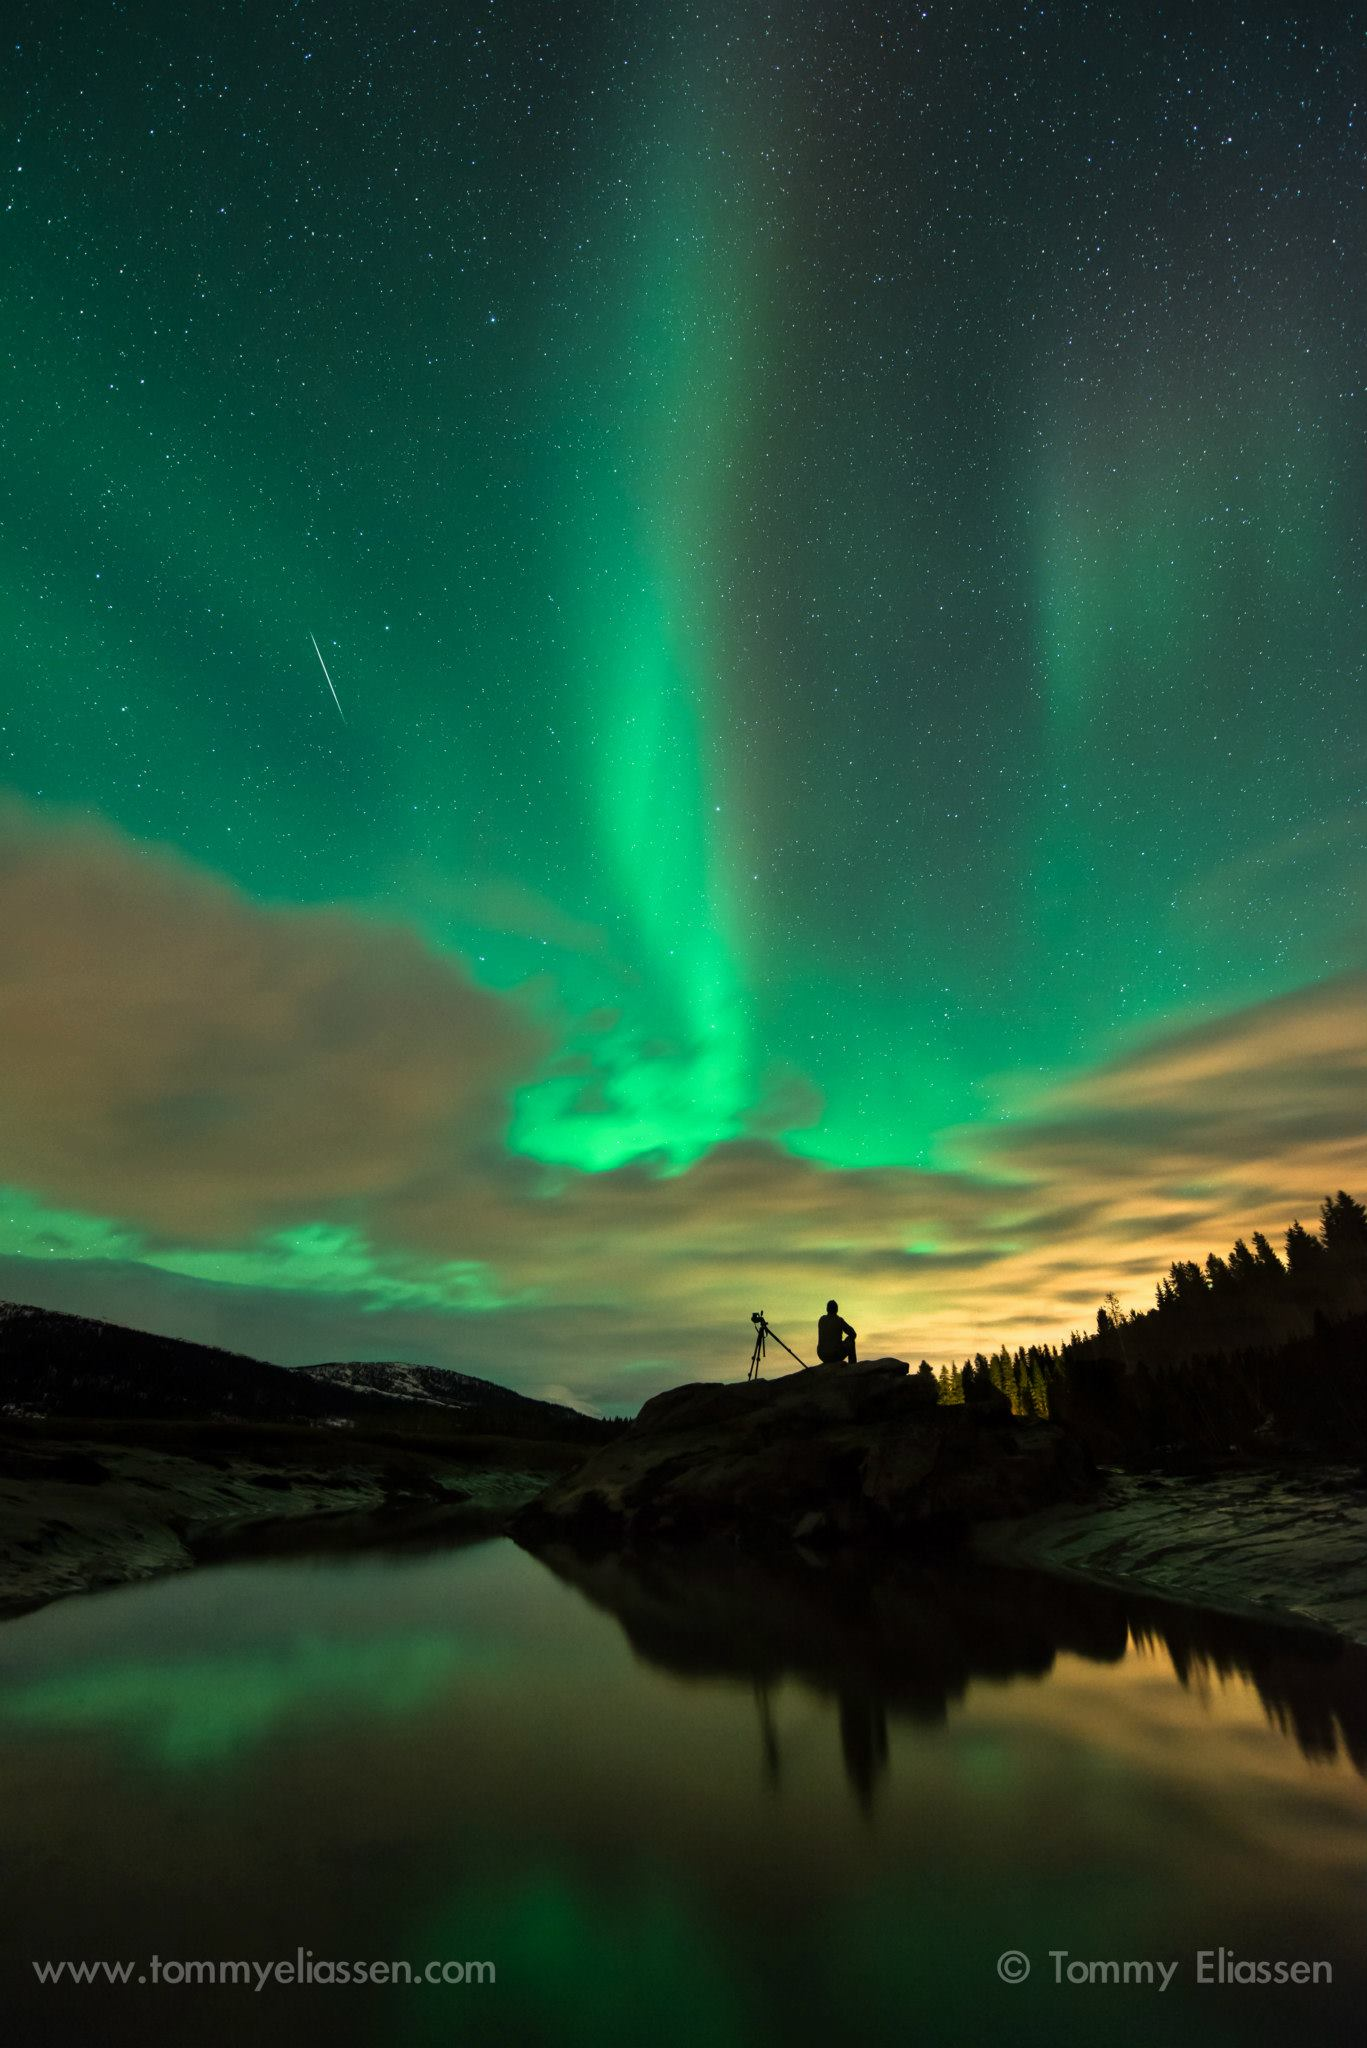 View larger. | In 2014, as the Quadrantids were flying, those at far northern latitudes were seeing auroras. Tommy Eliassen Photography captured this photo on January 3, 2014. Thank you, Tommy!